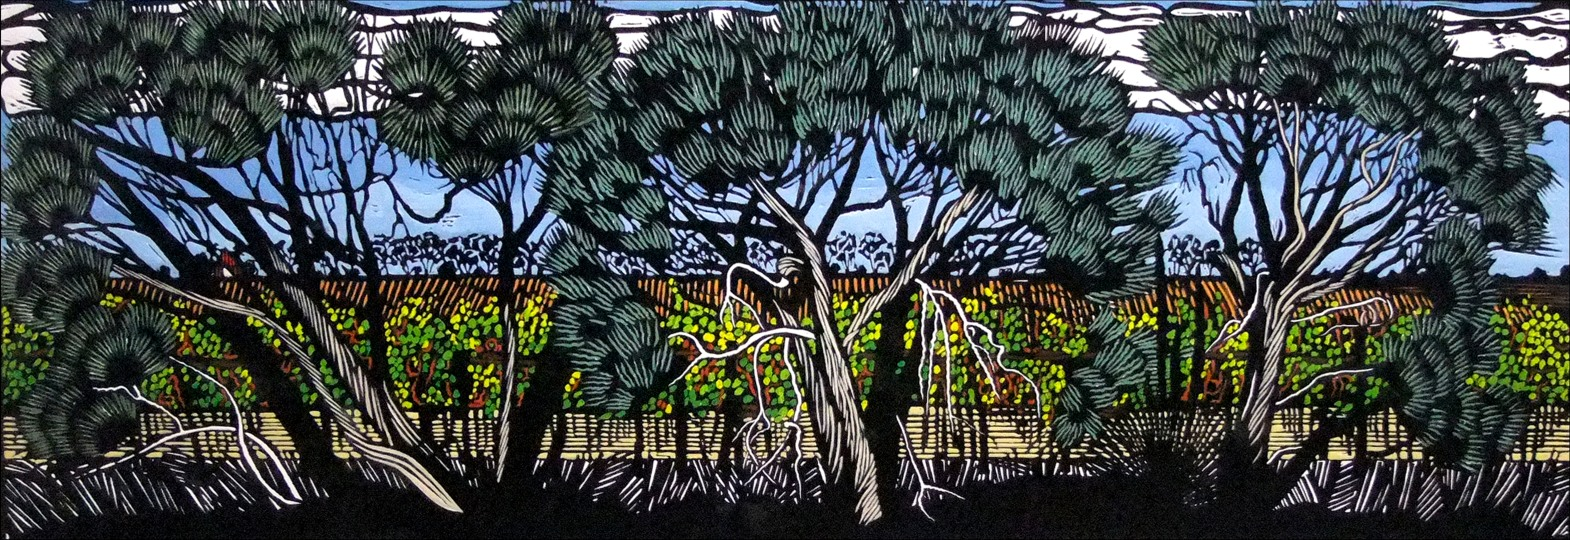 Moonahs in the Vale | 120cm w x 35cm h | $900 unframed